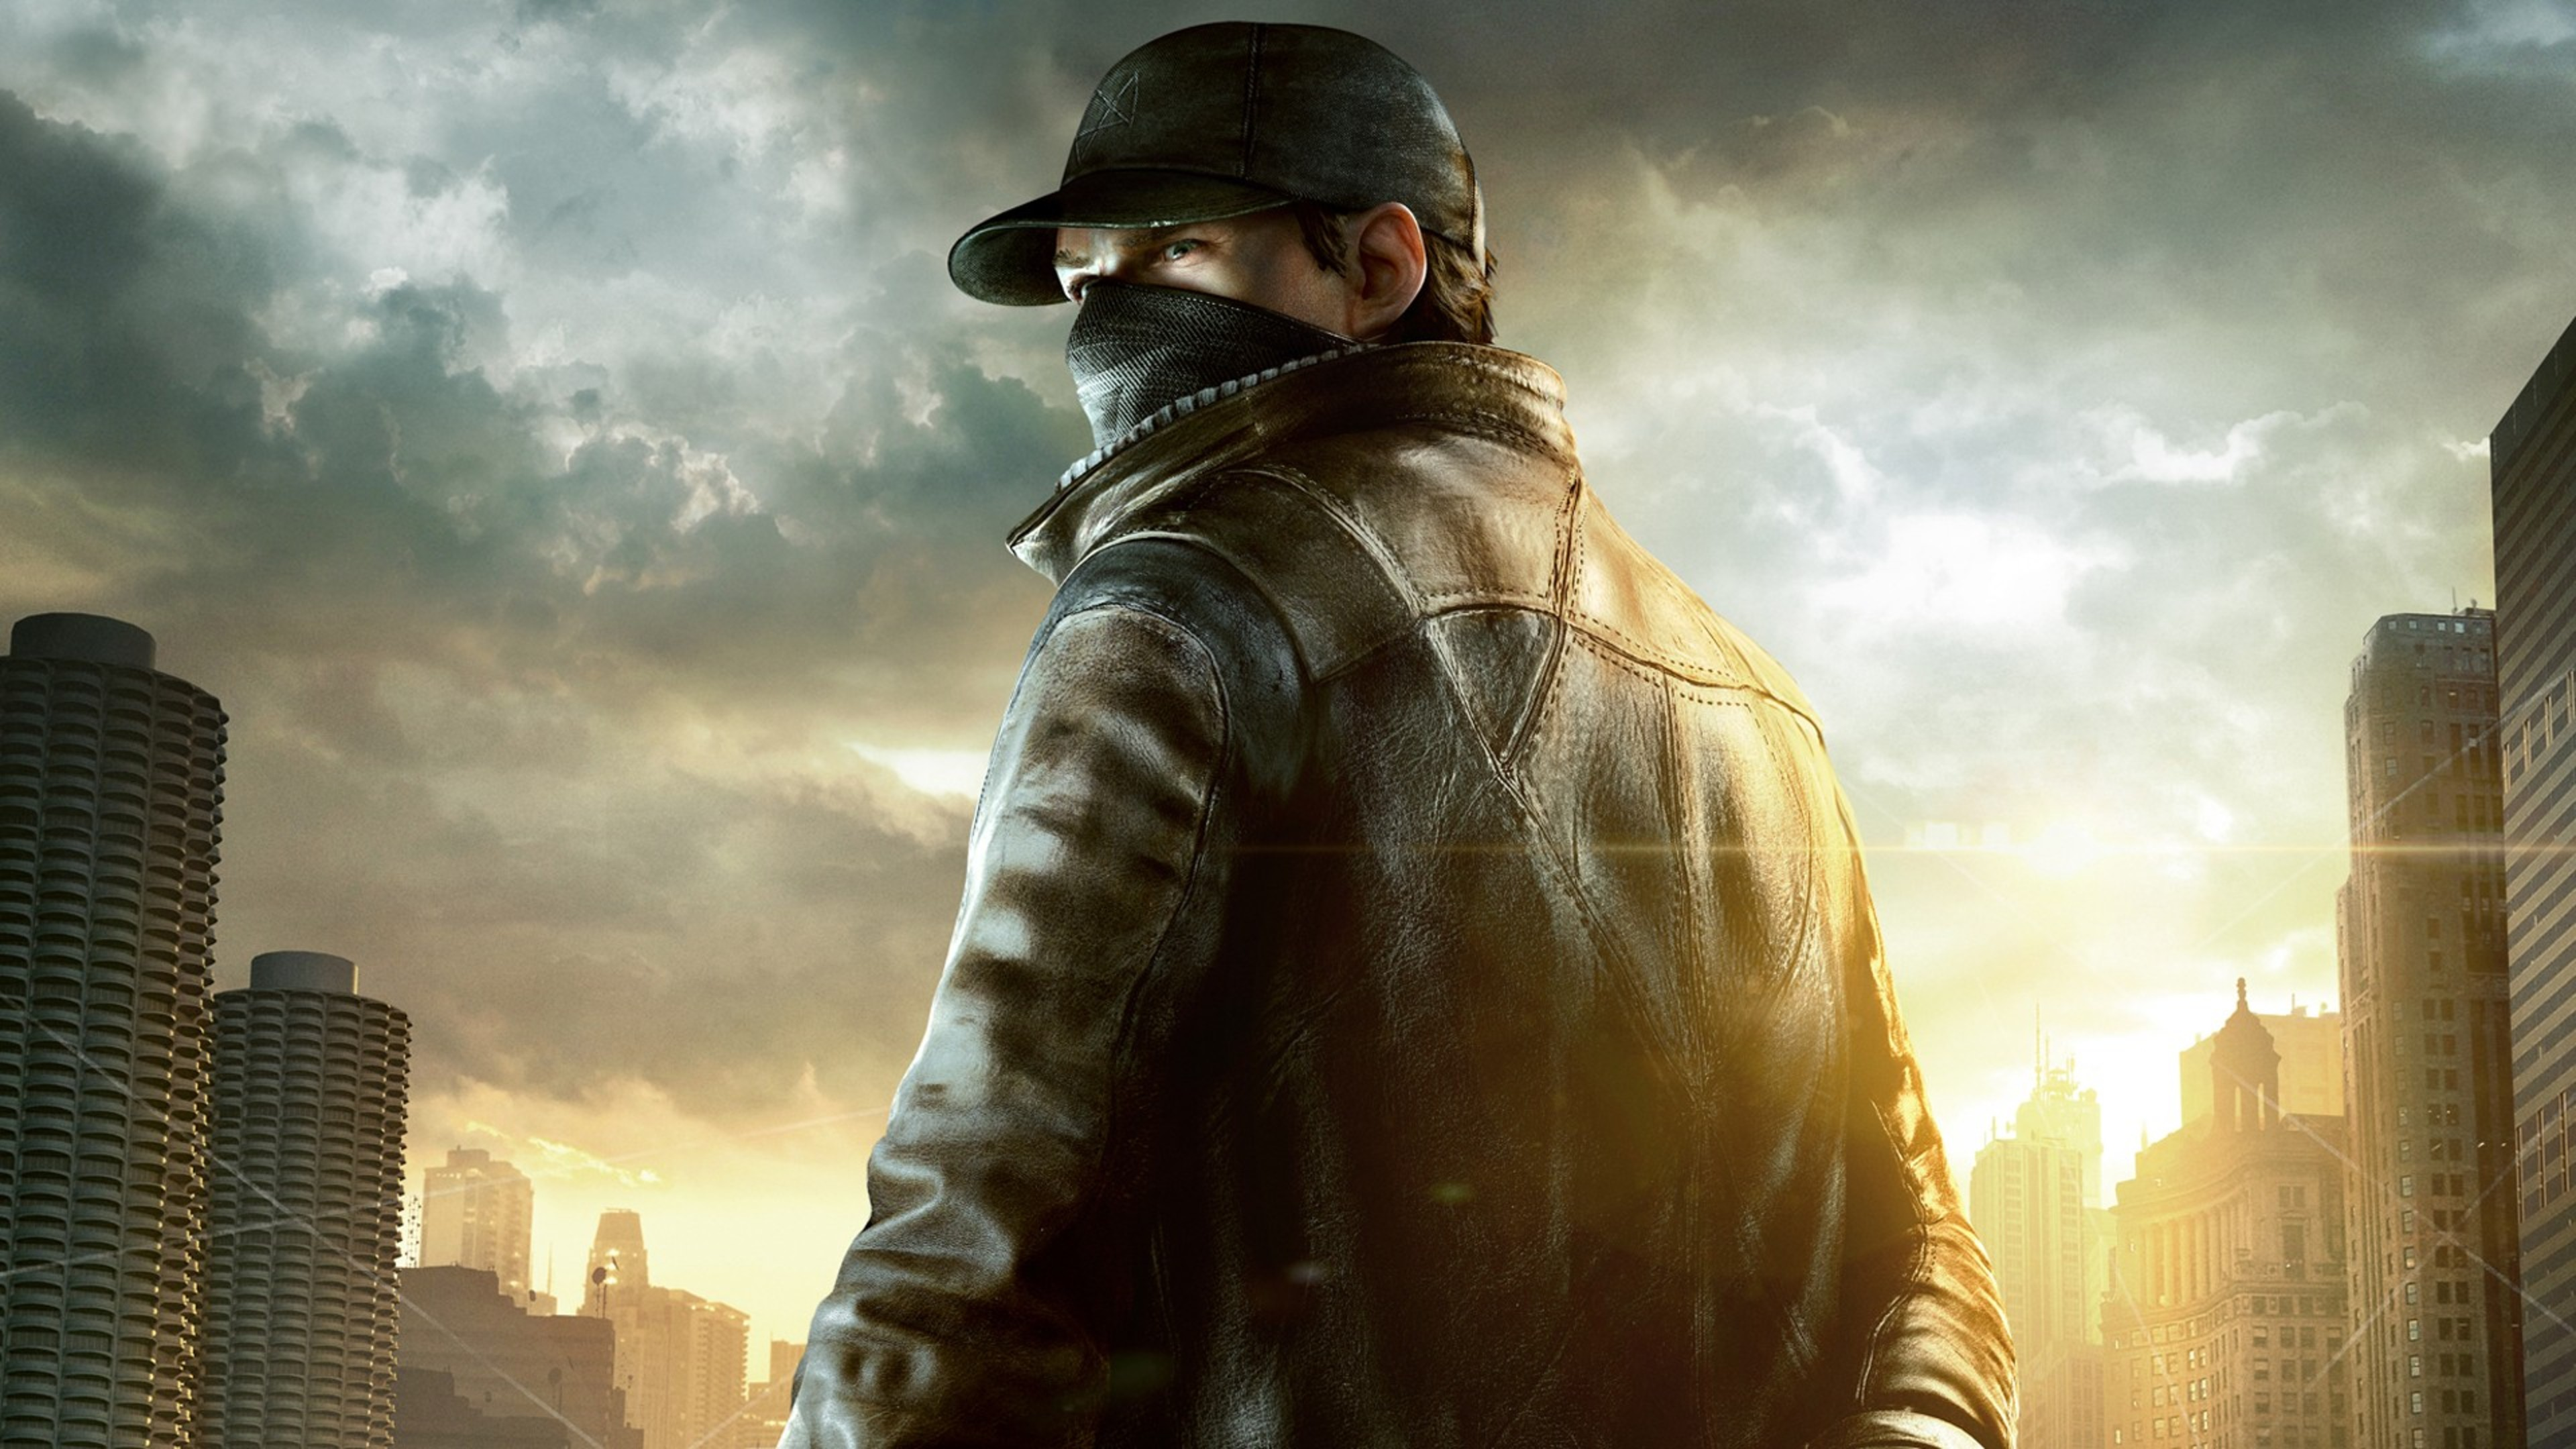 aiden pearce watch dogs hd games 4k wallpapers images